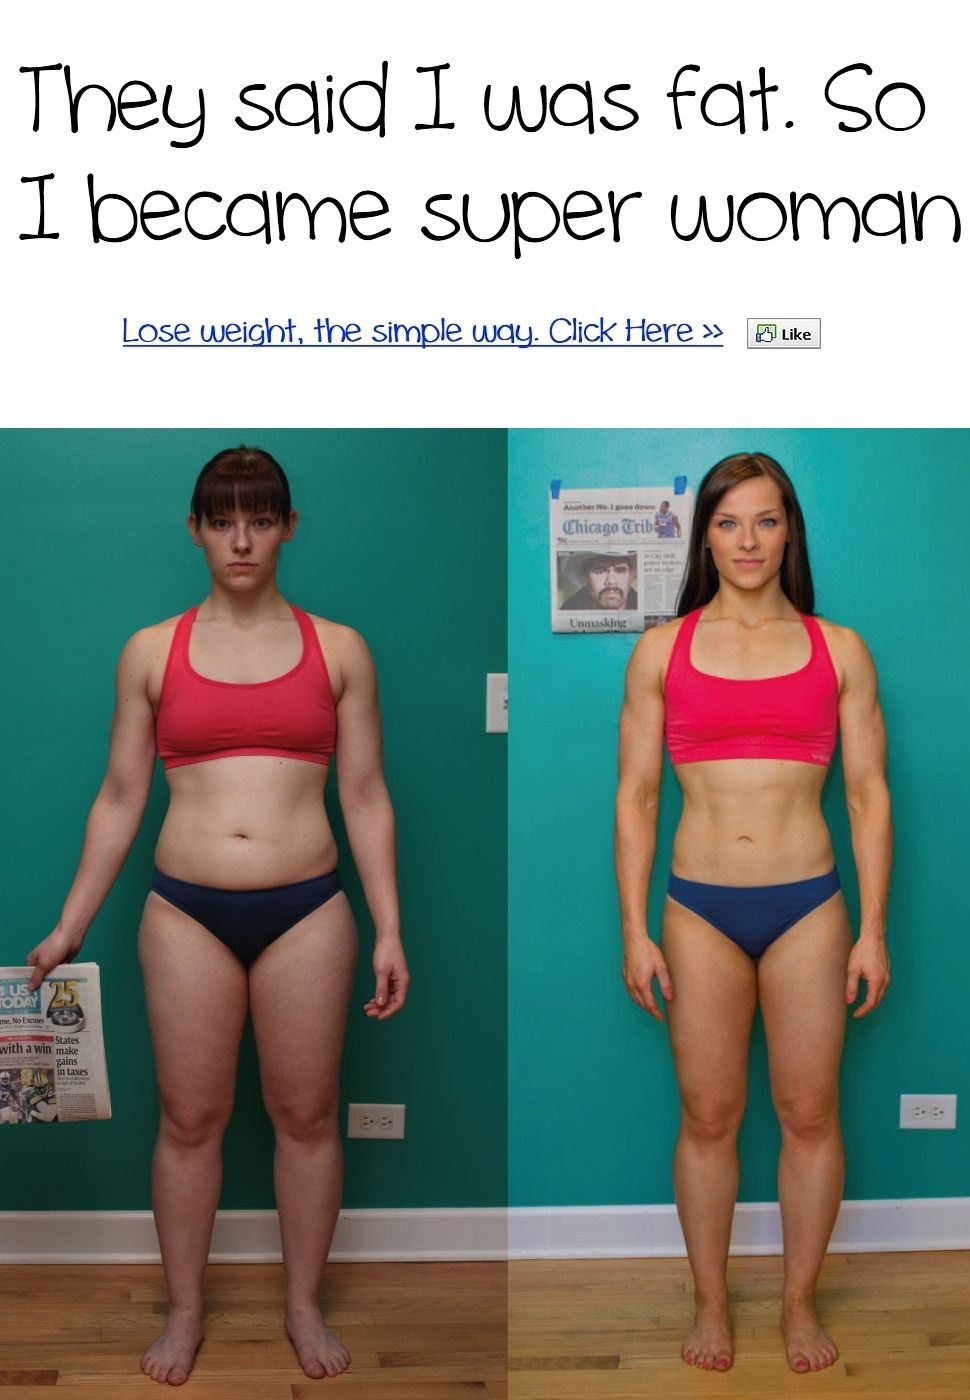 Extreme Weight Loss Photos That Get Super Real About the Journey